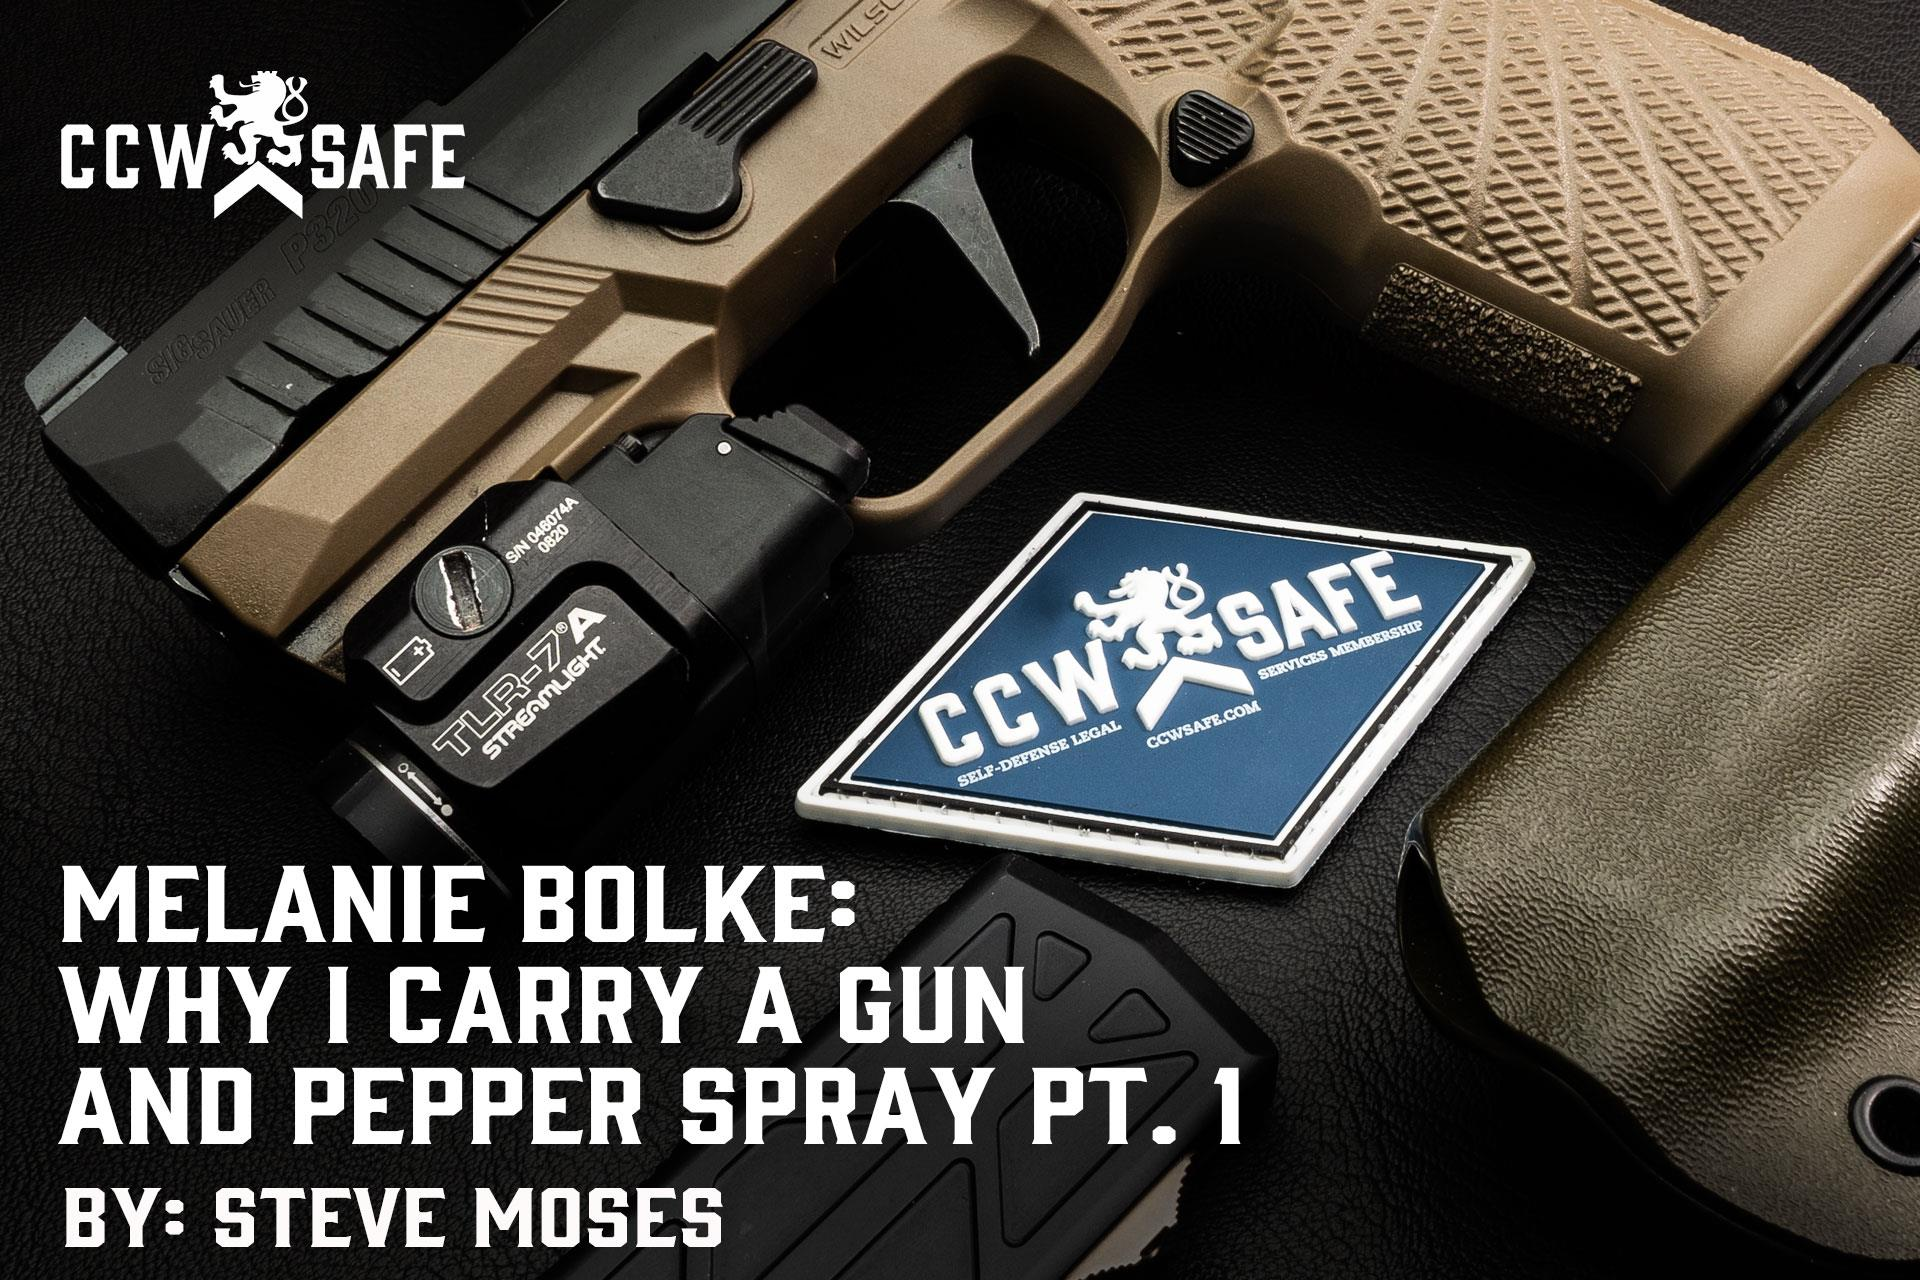 MELANIE BOLKE: WHY I CARRY A GUN AND PEPPER SPRAY